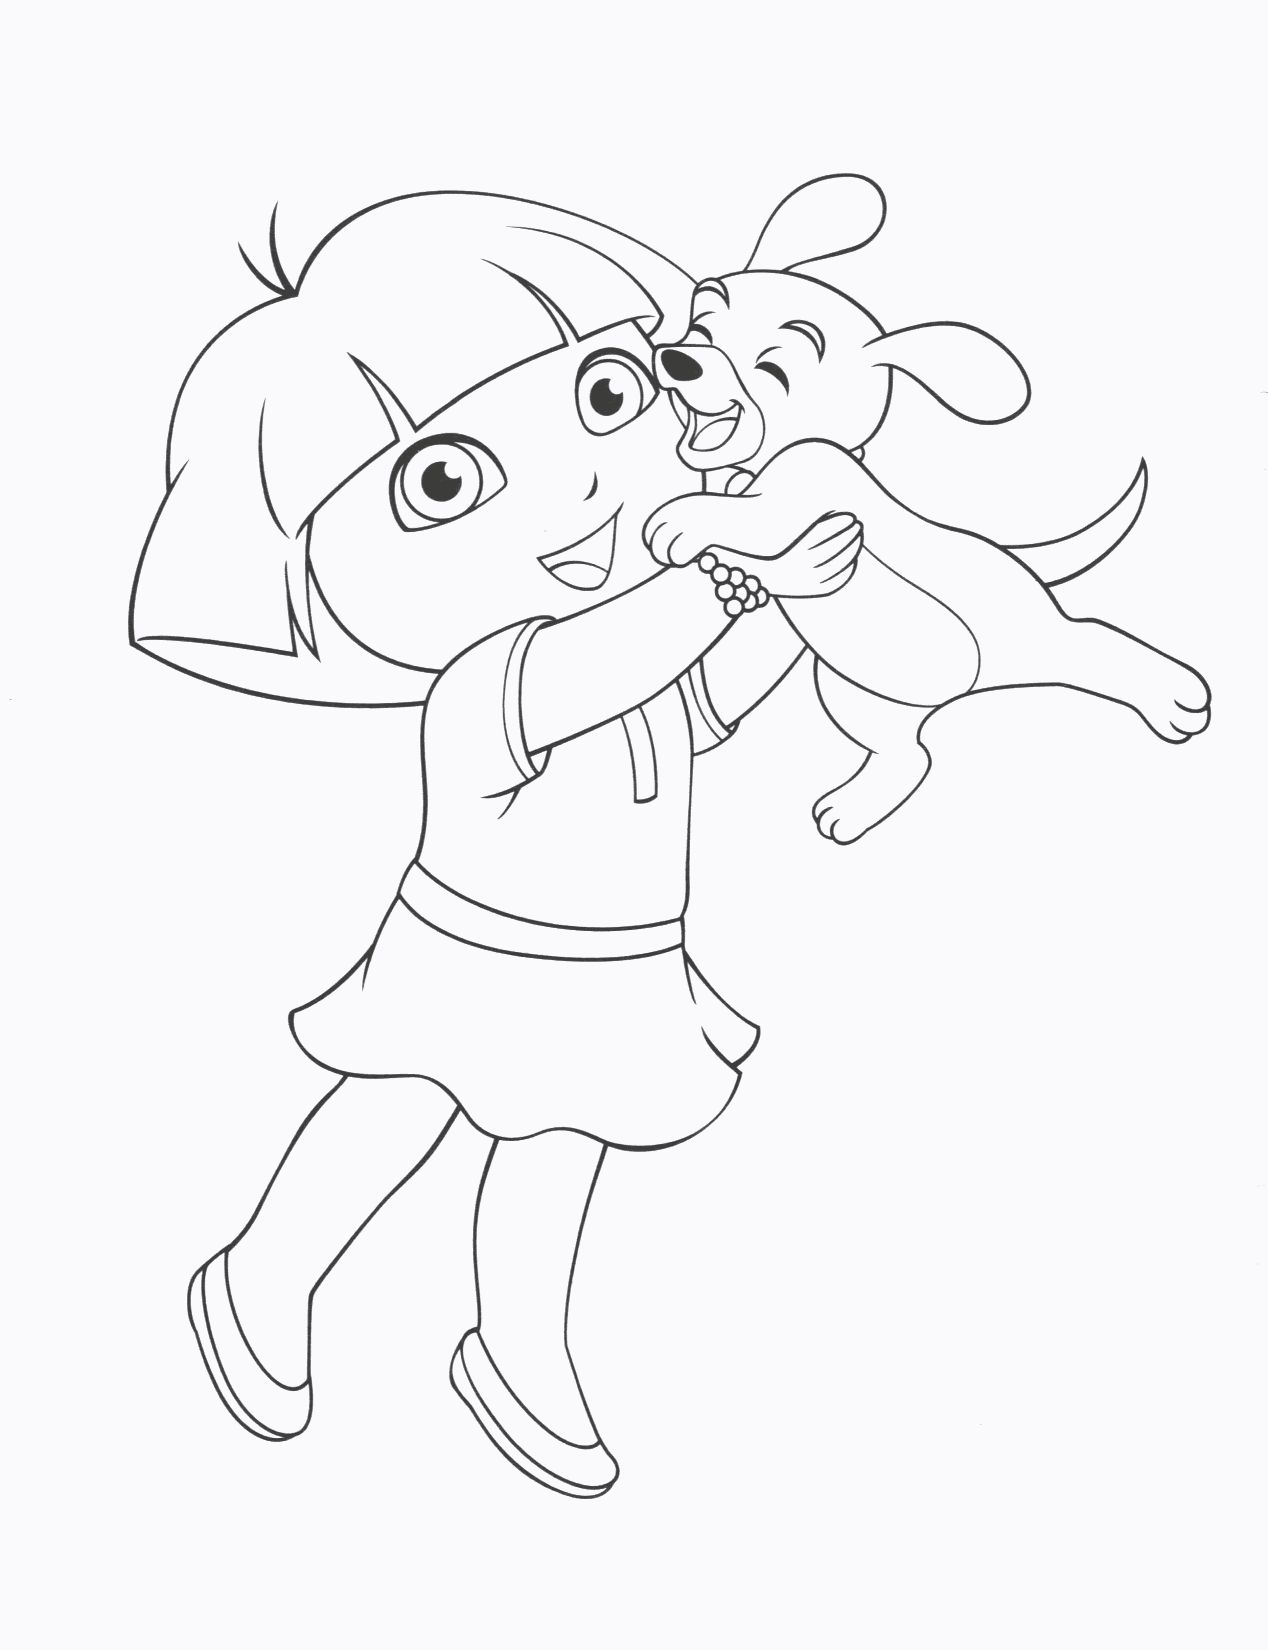 Dora The Explorer Coloring Book Dora Coloring Puppy Coloring Pages Coloring Pages